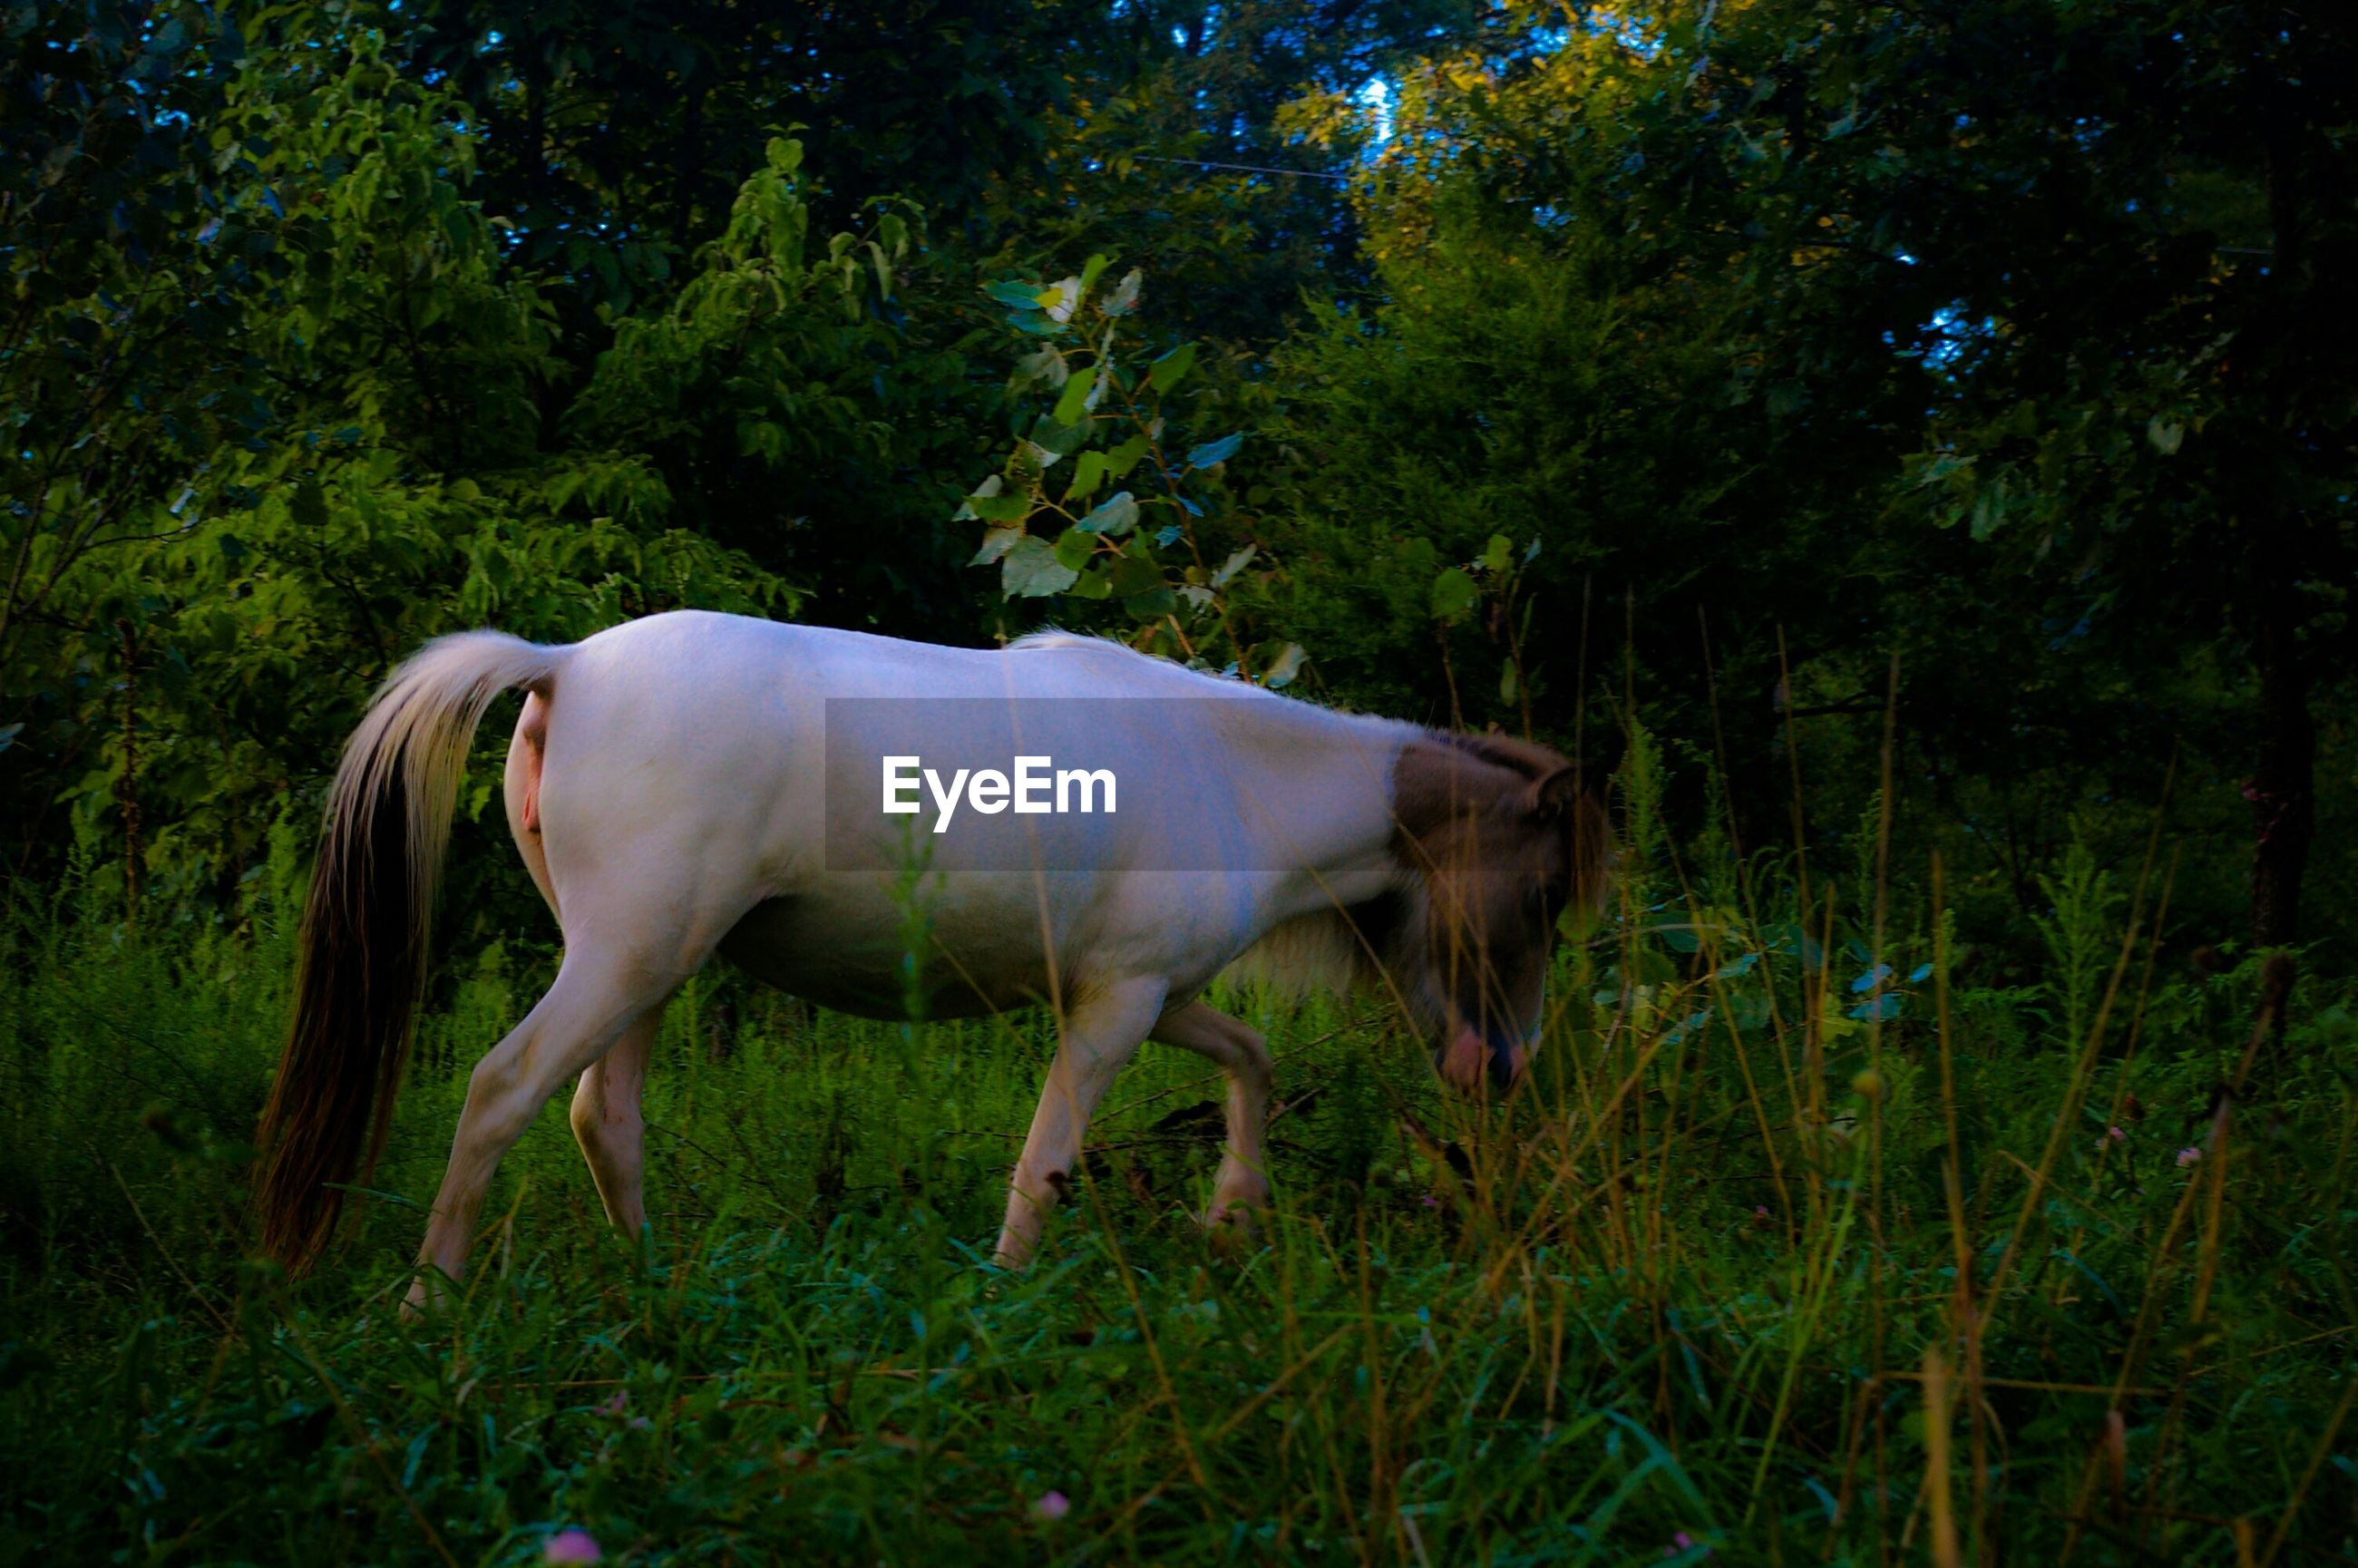 Horse walking on grassy field against trees